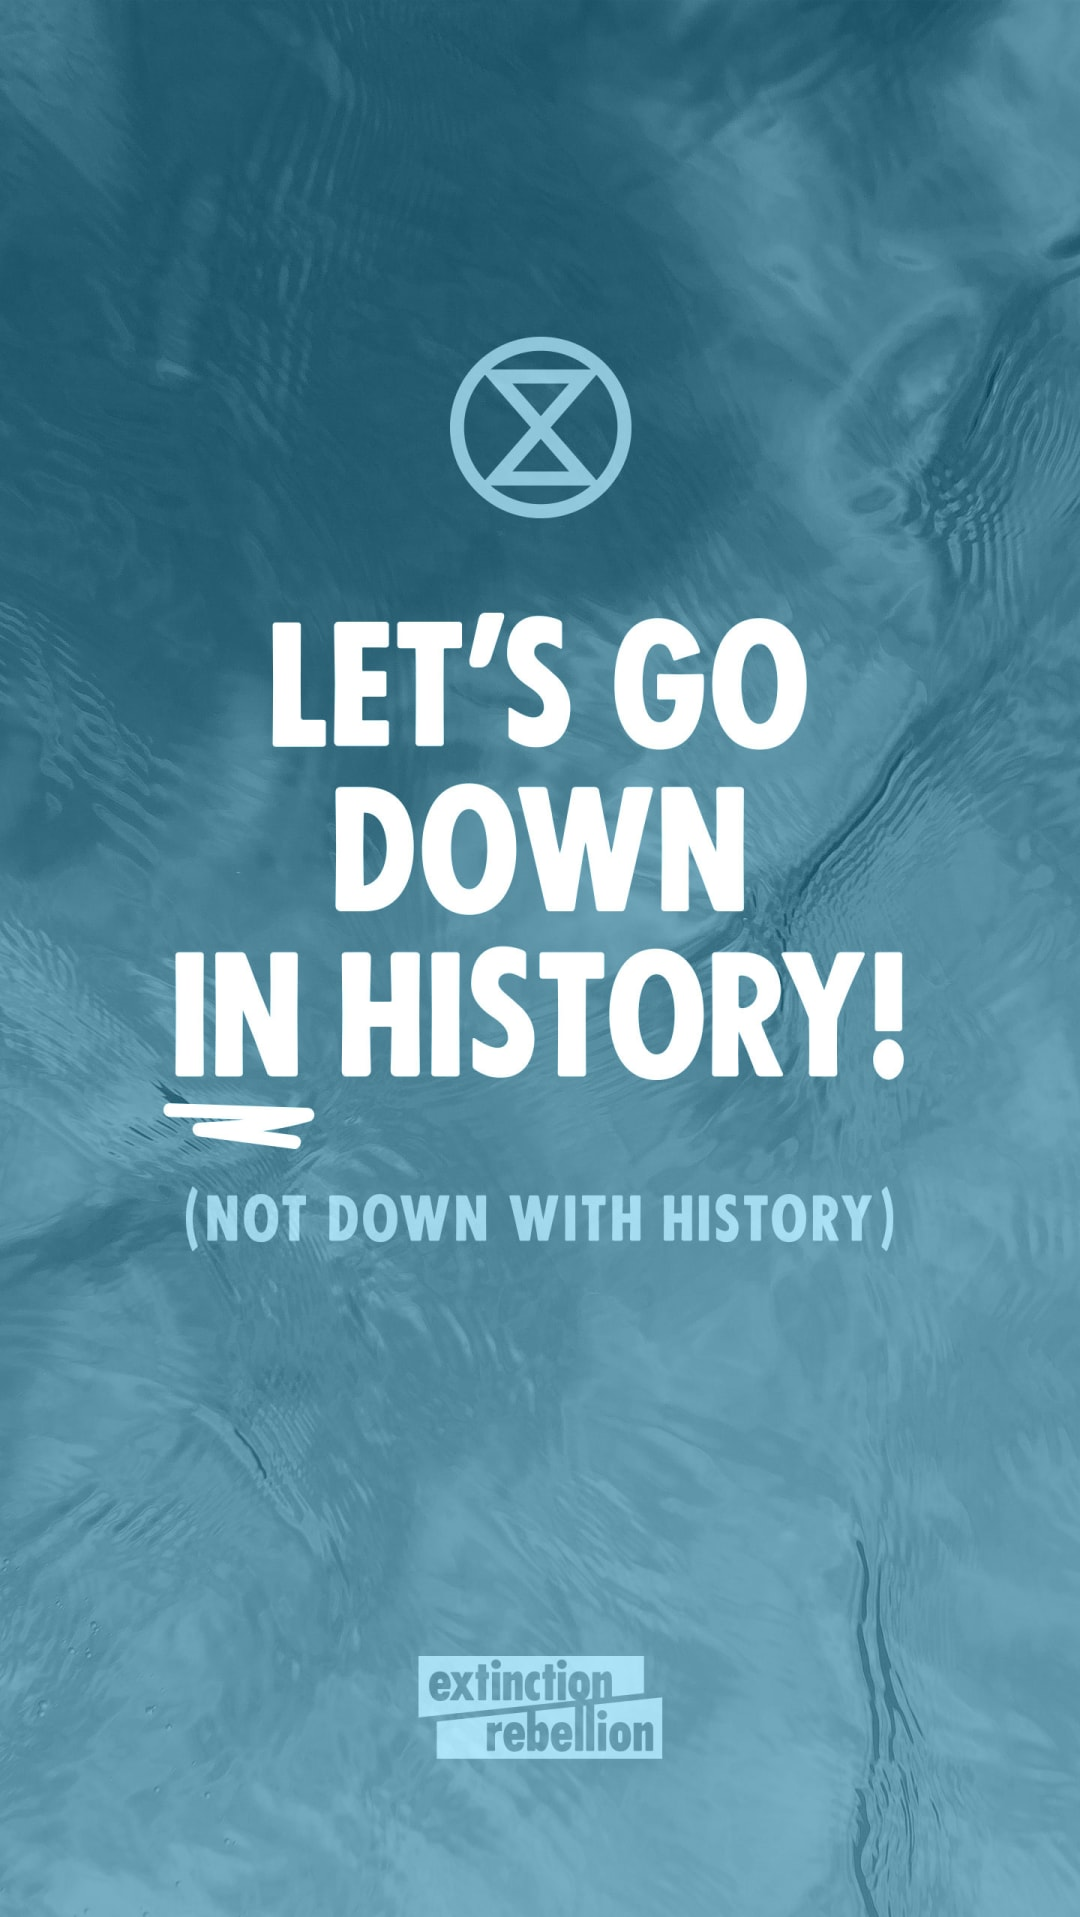 let's go down in history, not down with history. Climate protest design for Extinction Rebellion.